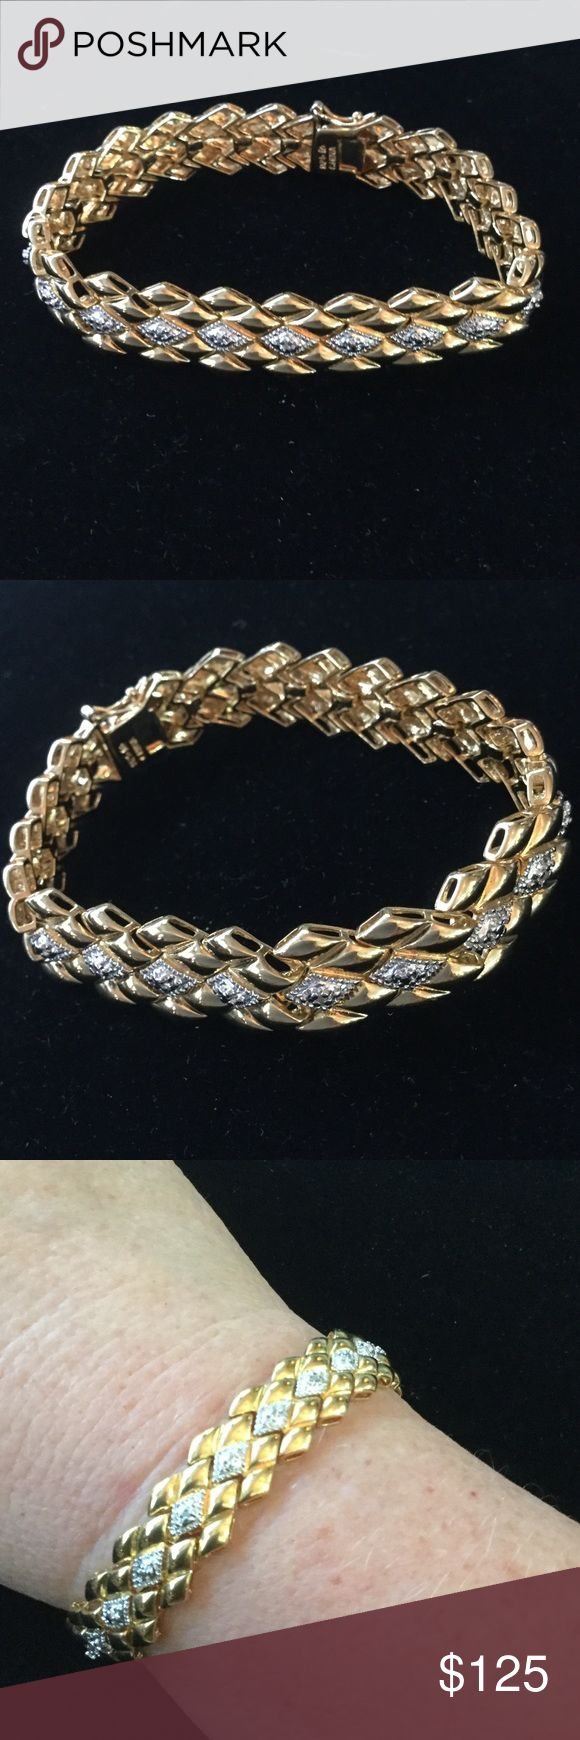 Heavy, Solid Sterling Silver & Gold Bracelet Wow,  this vintage bracelet is solid silver unlike the real lightweight ones they sell at Mall Jewelers today !  This is heavy and is bonded with 14K gold & white gold !  Super Lux and over 25 grams.  Locking latch mechanism & secure clasp.  Special low price today ! Estate Jewelry Bracelets